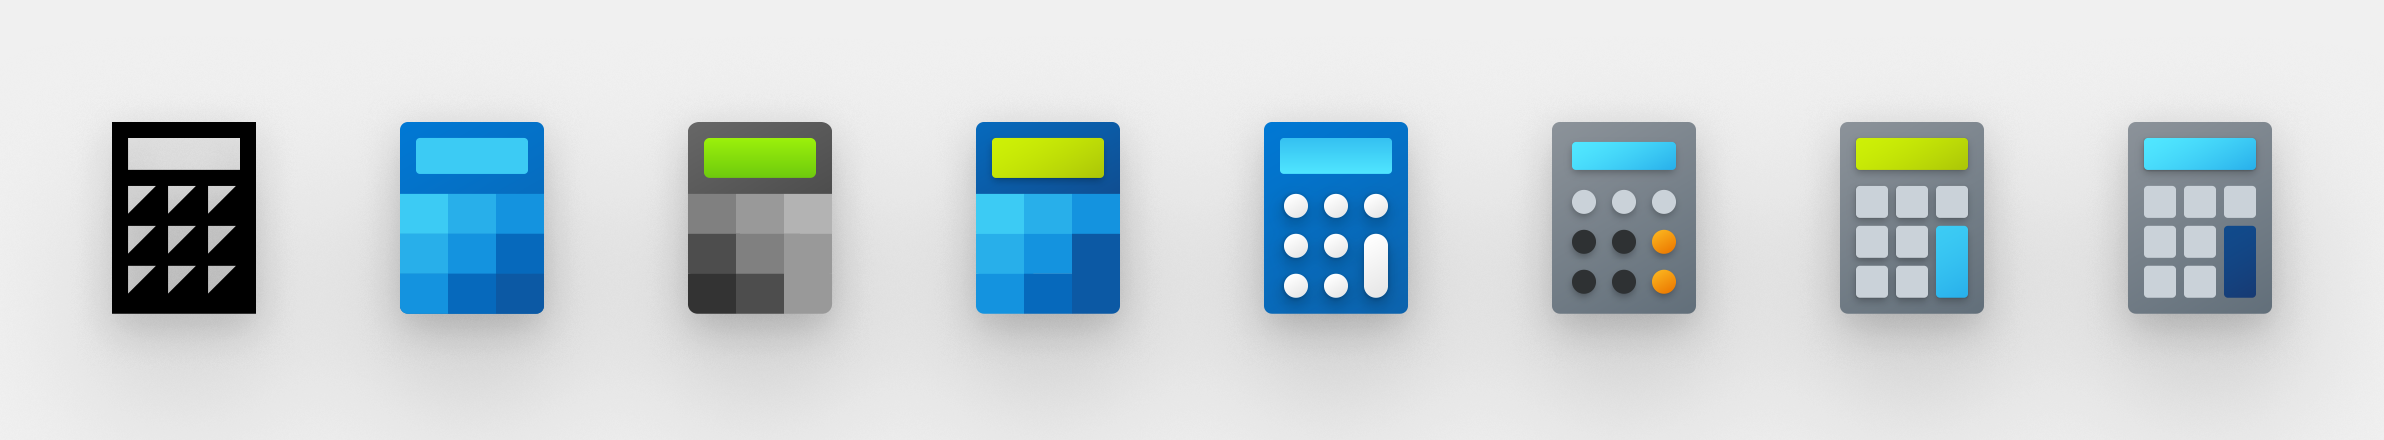 Eight iterations of the calculator icon in a row.